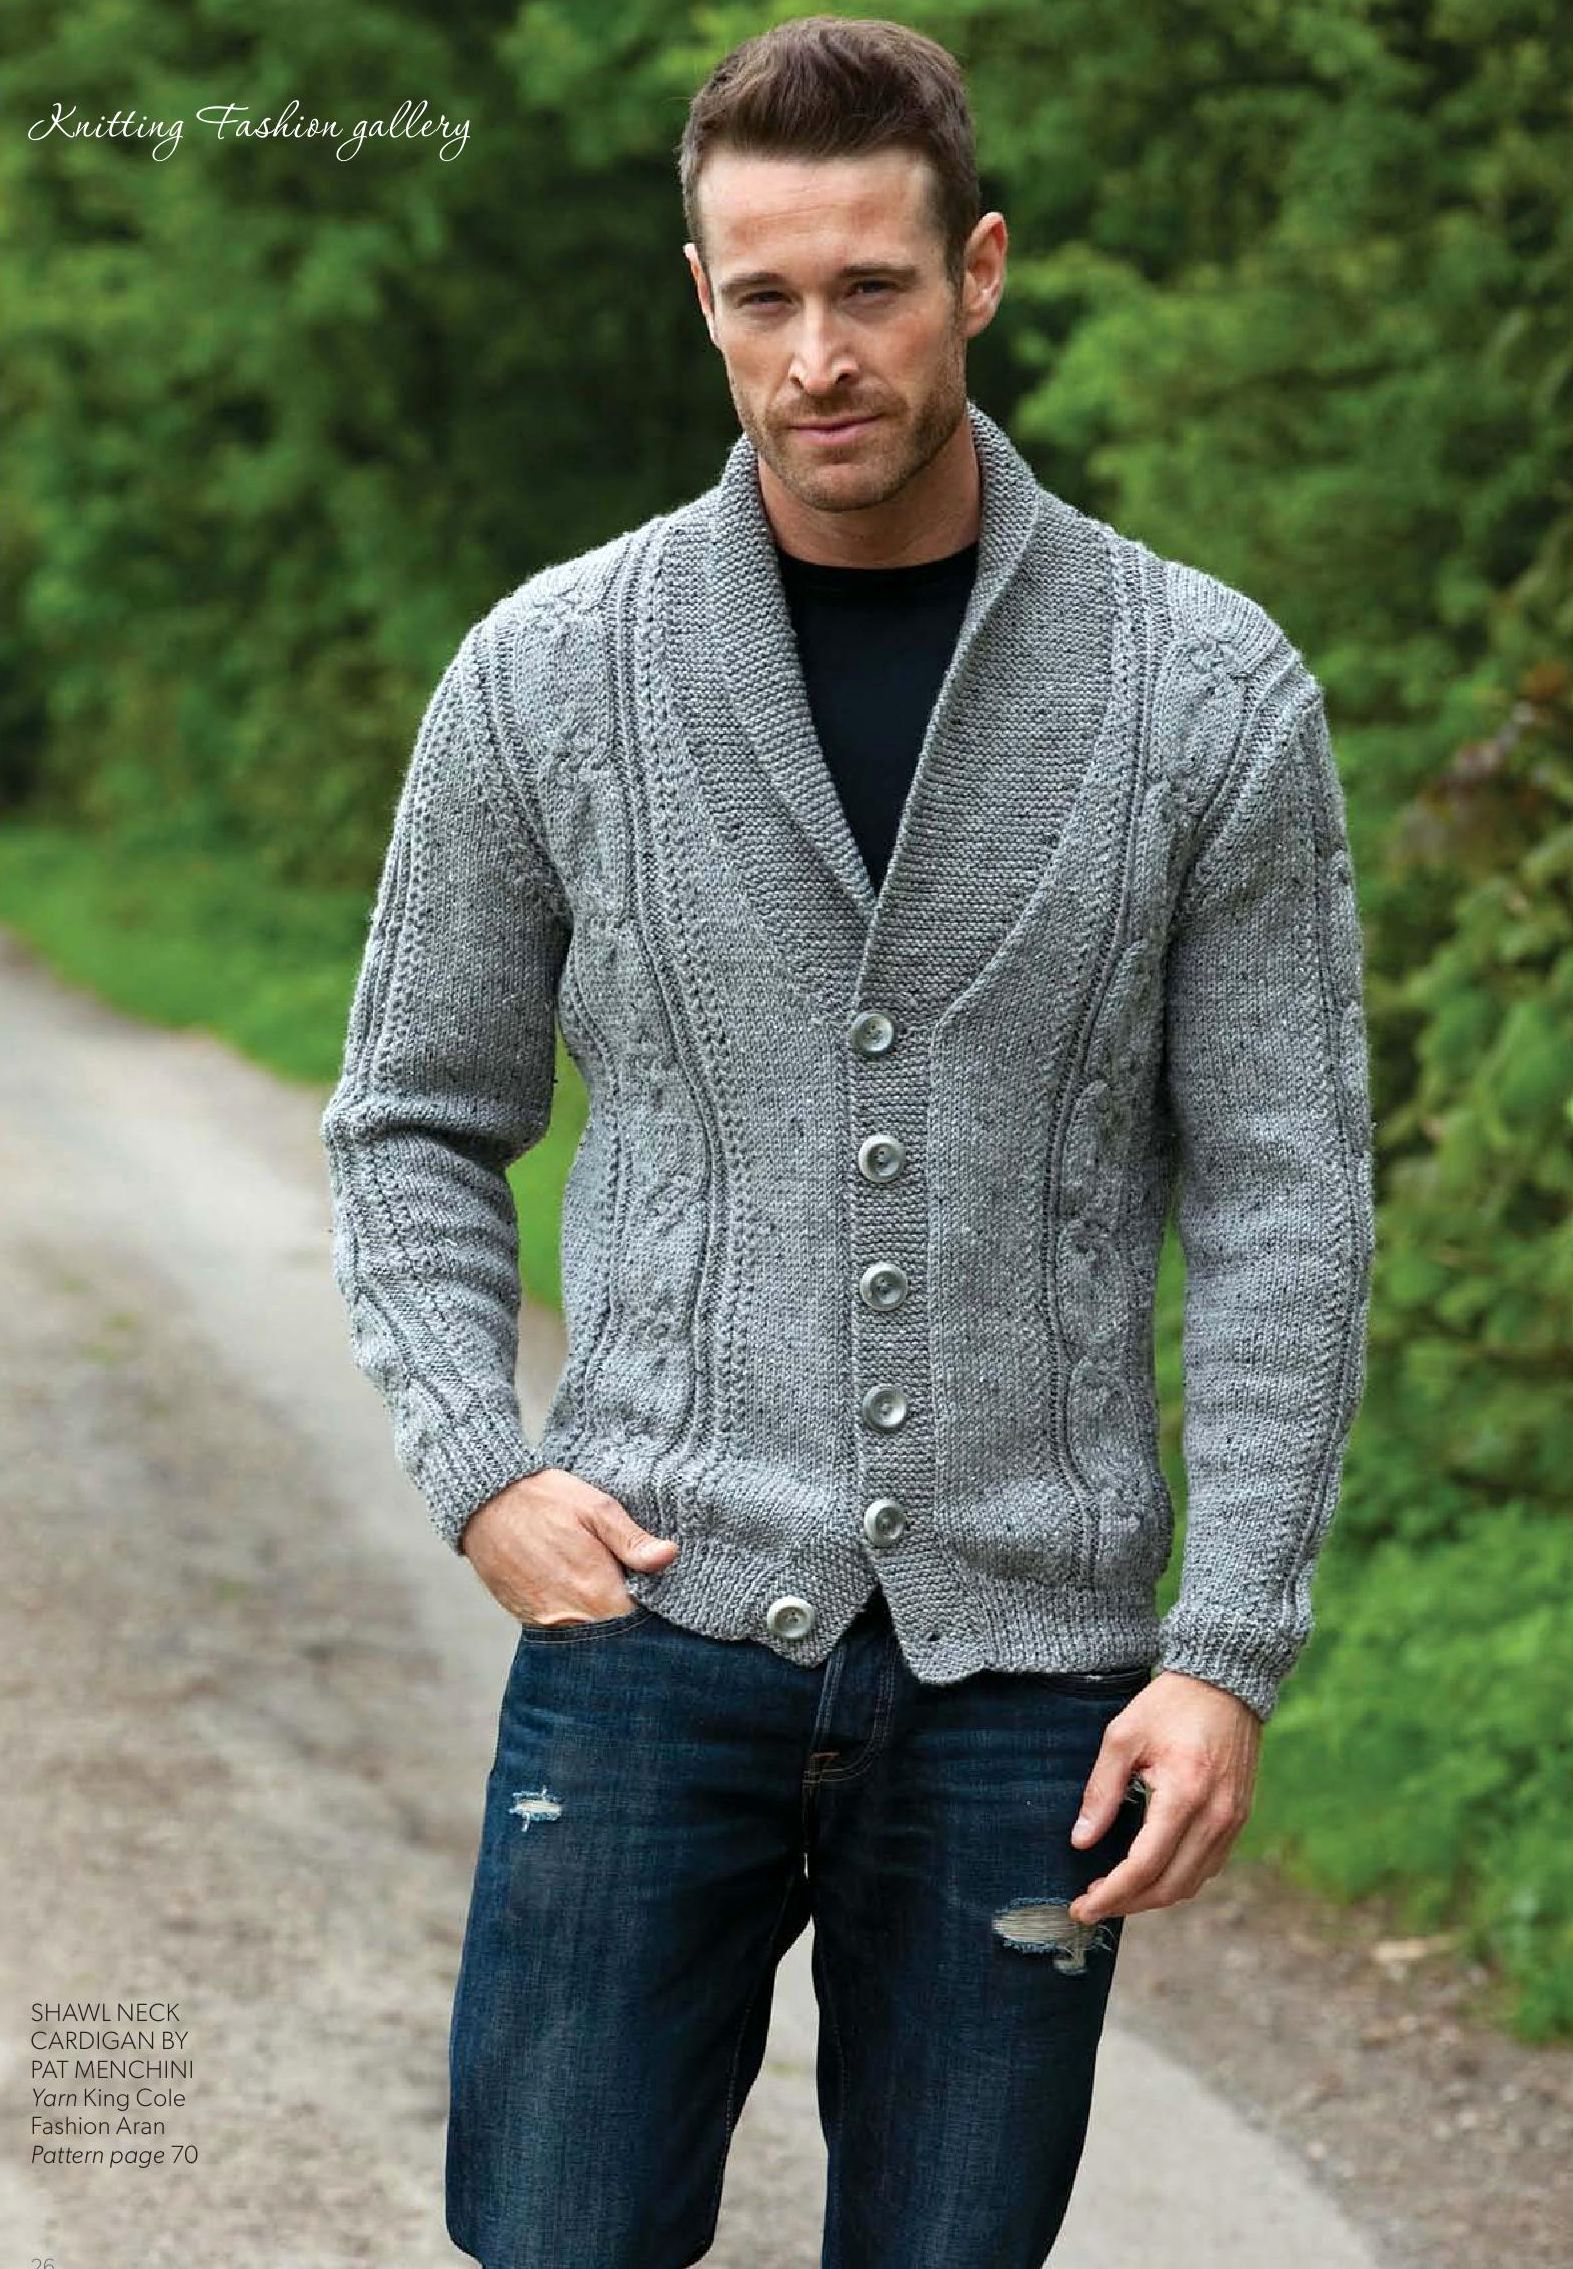 Мужской кардиган Shawl Neck | Mens jumpers knit cable | Pinterest ...